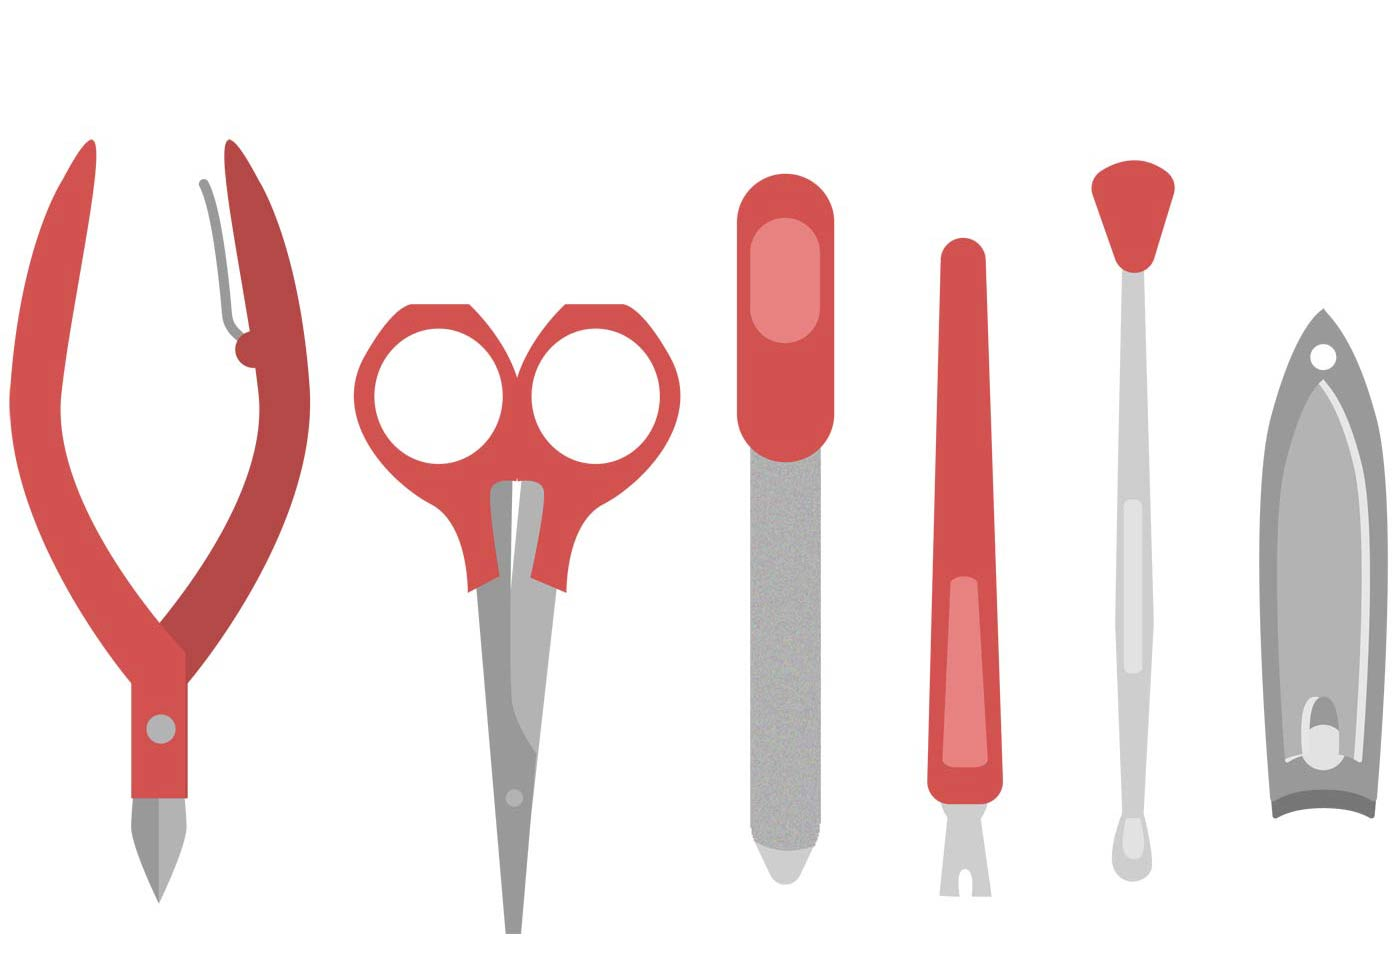 Manicure Pedicure Tools Vector Set - Download Free Vector ...